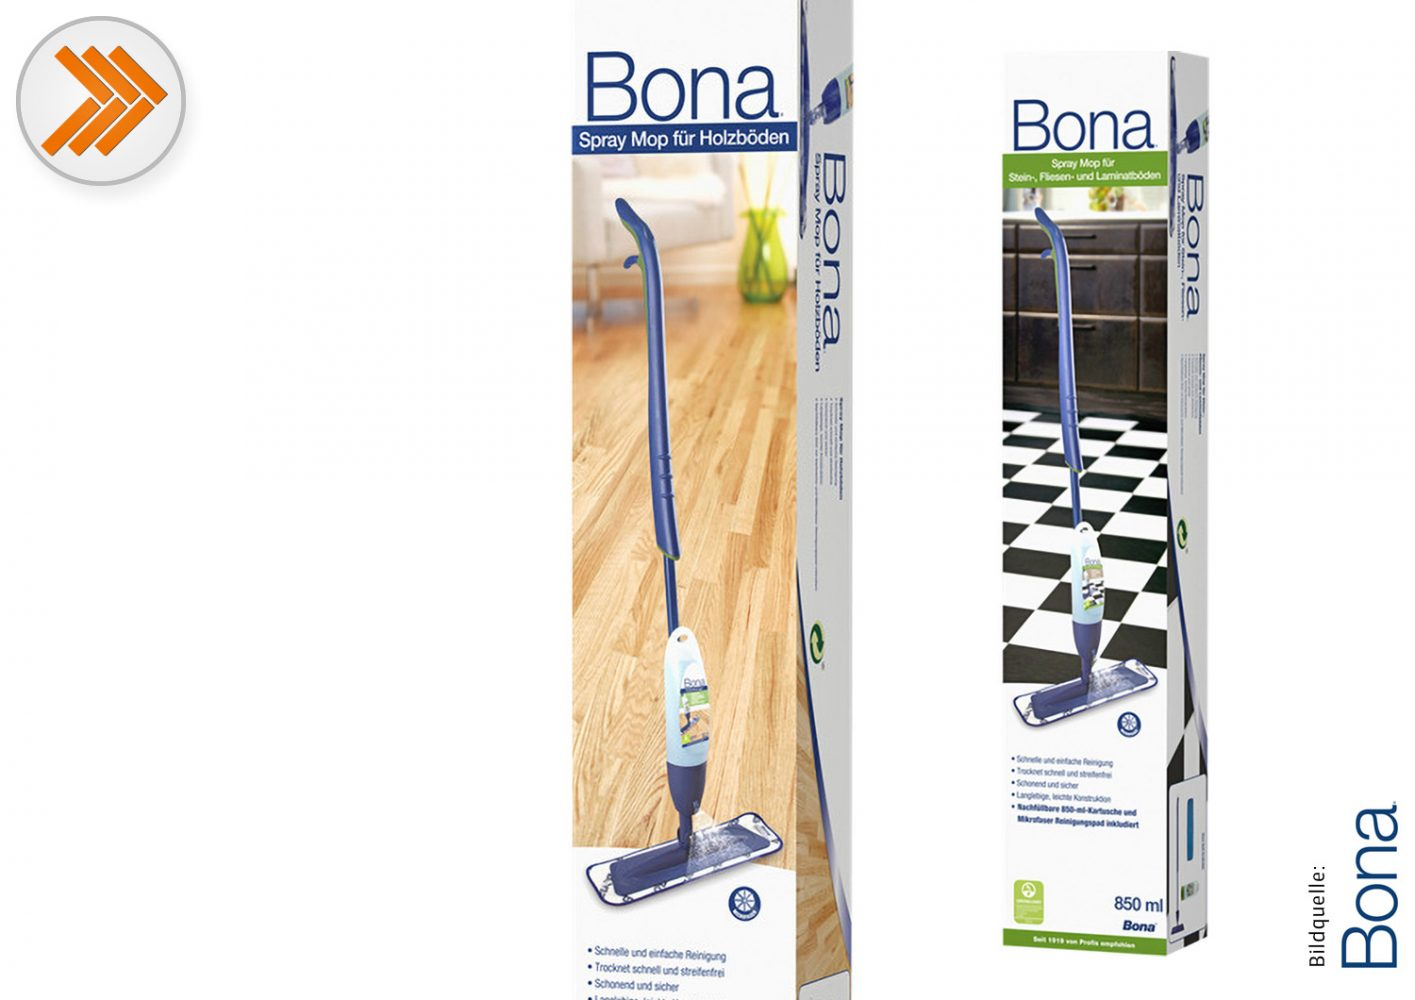 Spray Mop Parkett/Spray Mop Fliesen+Laminat Bona